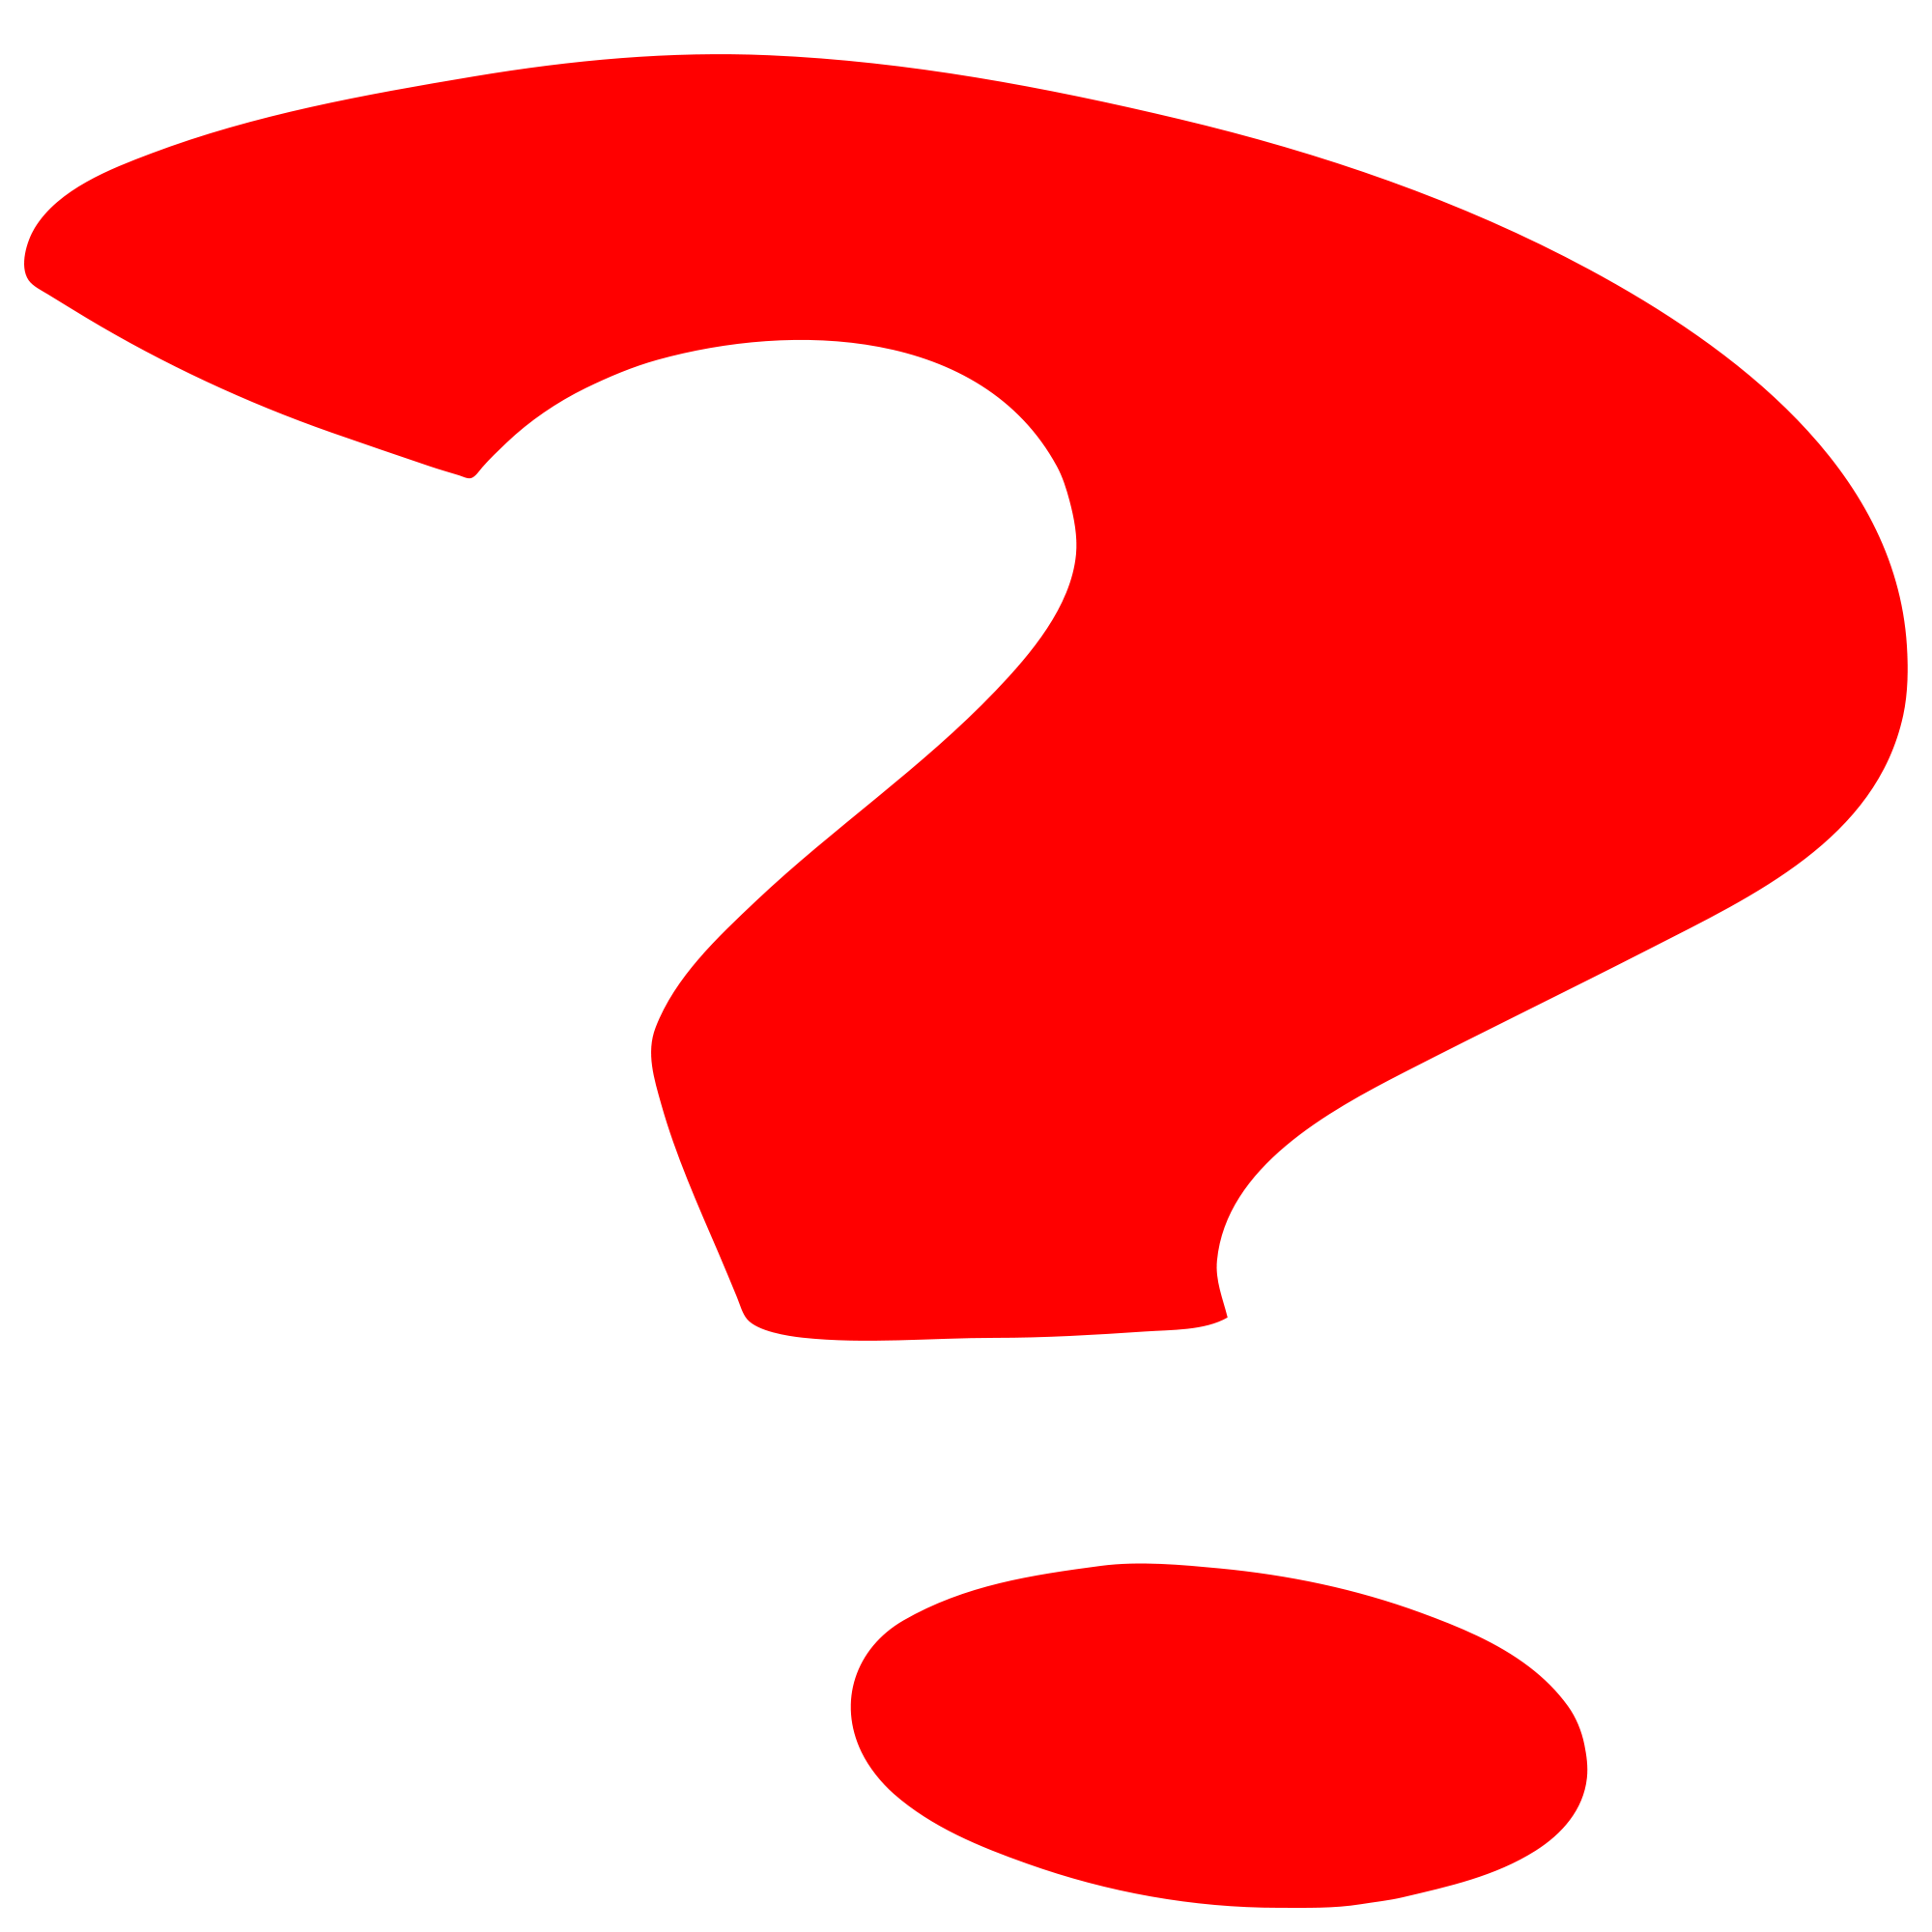 picture free Marks clipart random question. File red mark png.